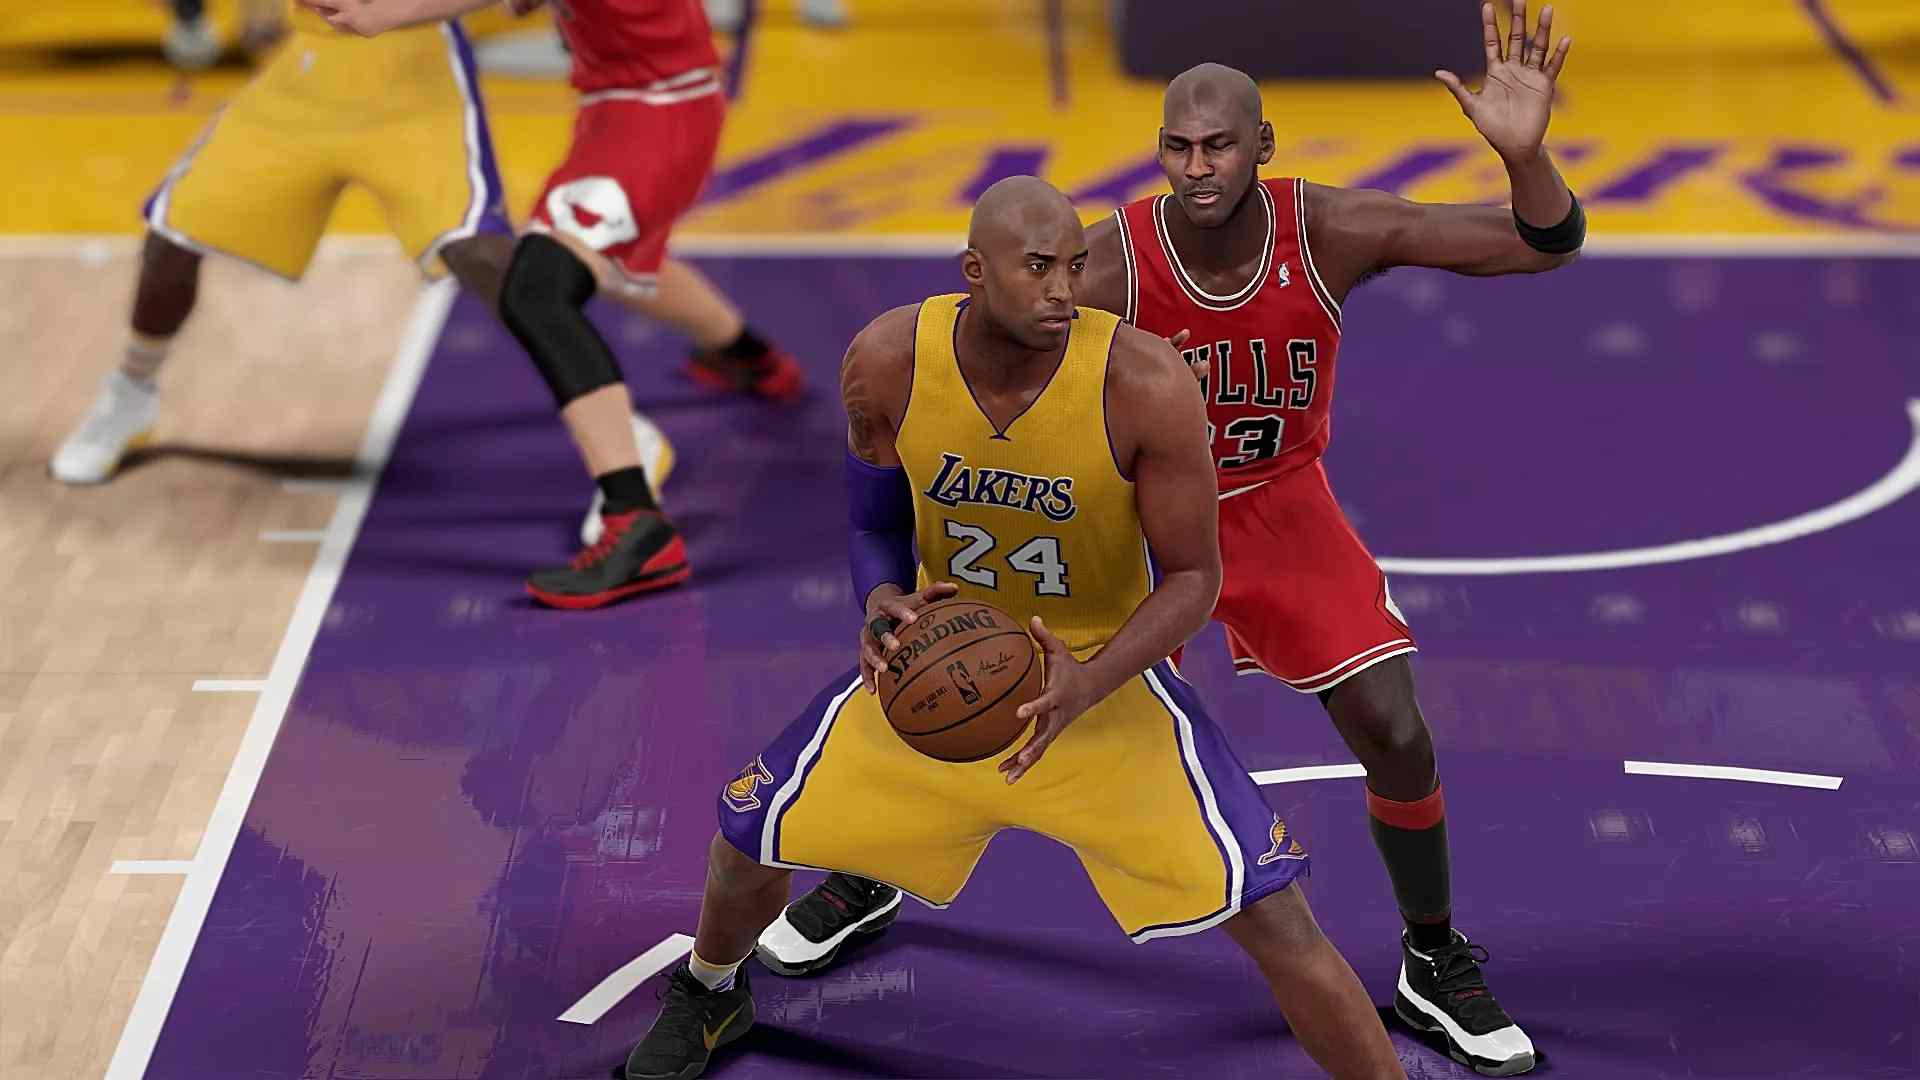 nba 2k17 dribble move glitch